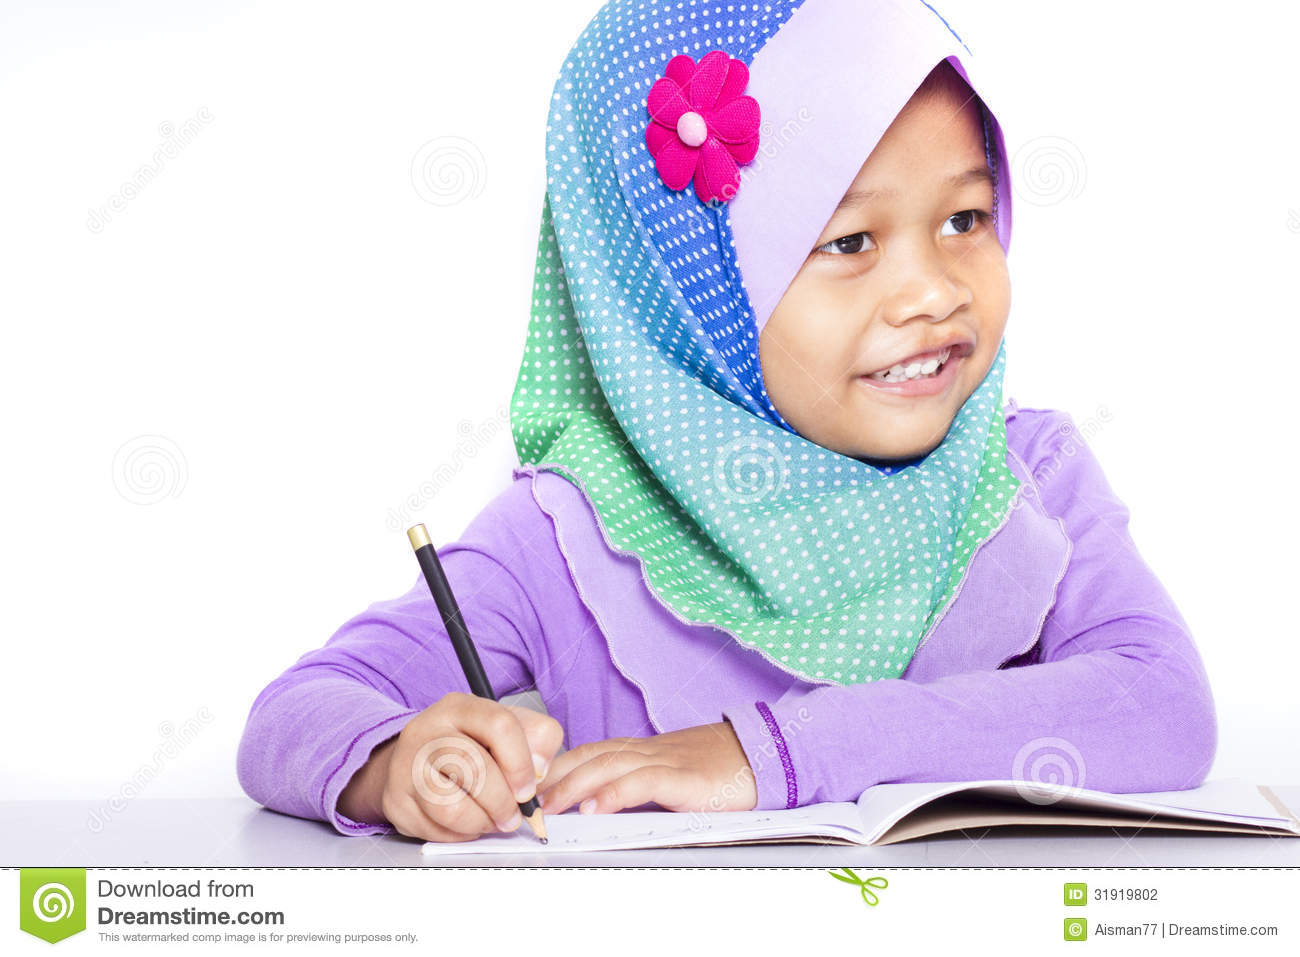 muslim writing Writing an islamic will 1 is it  the most important condition is that he/she besides being trustworthy must also be a muslim who will raise the children.